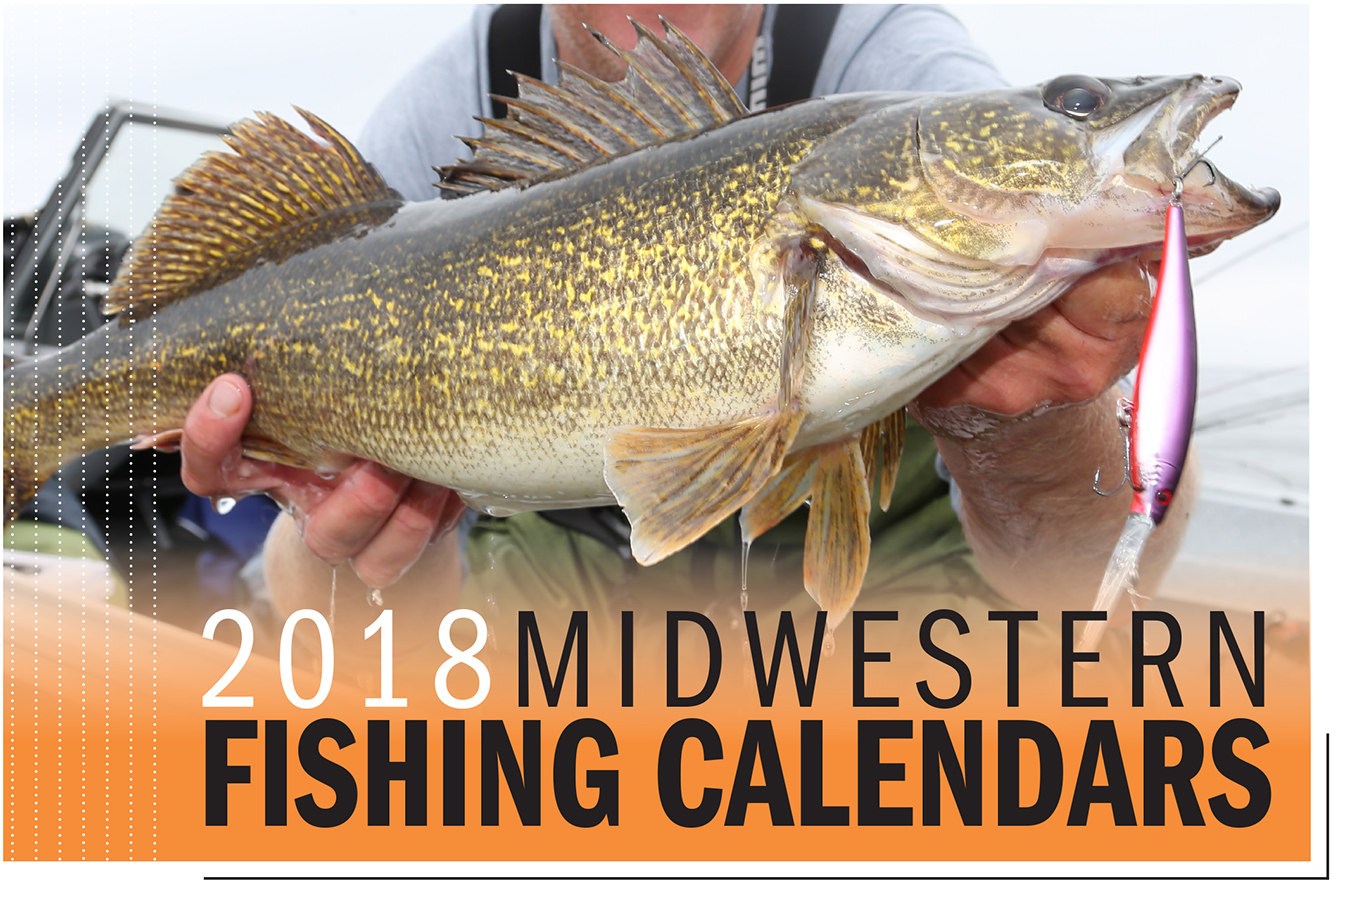 2018 Midwestern Fishing Calendars